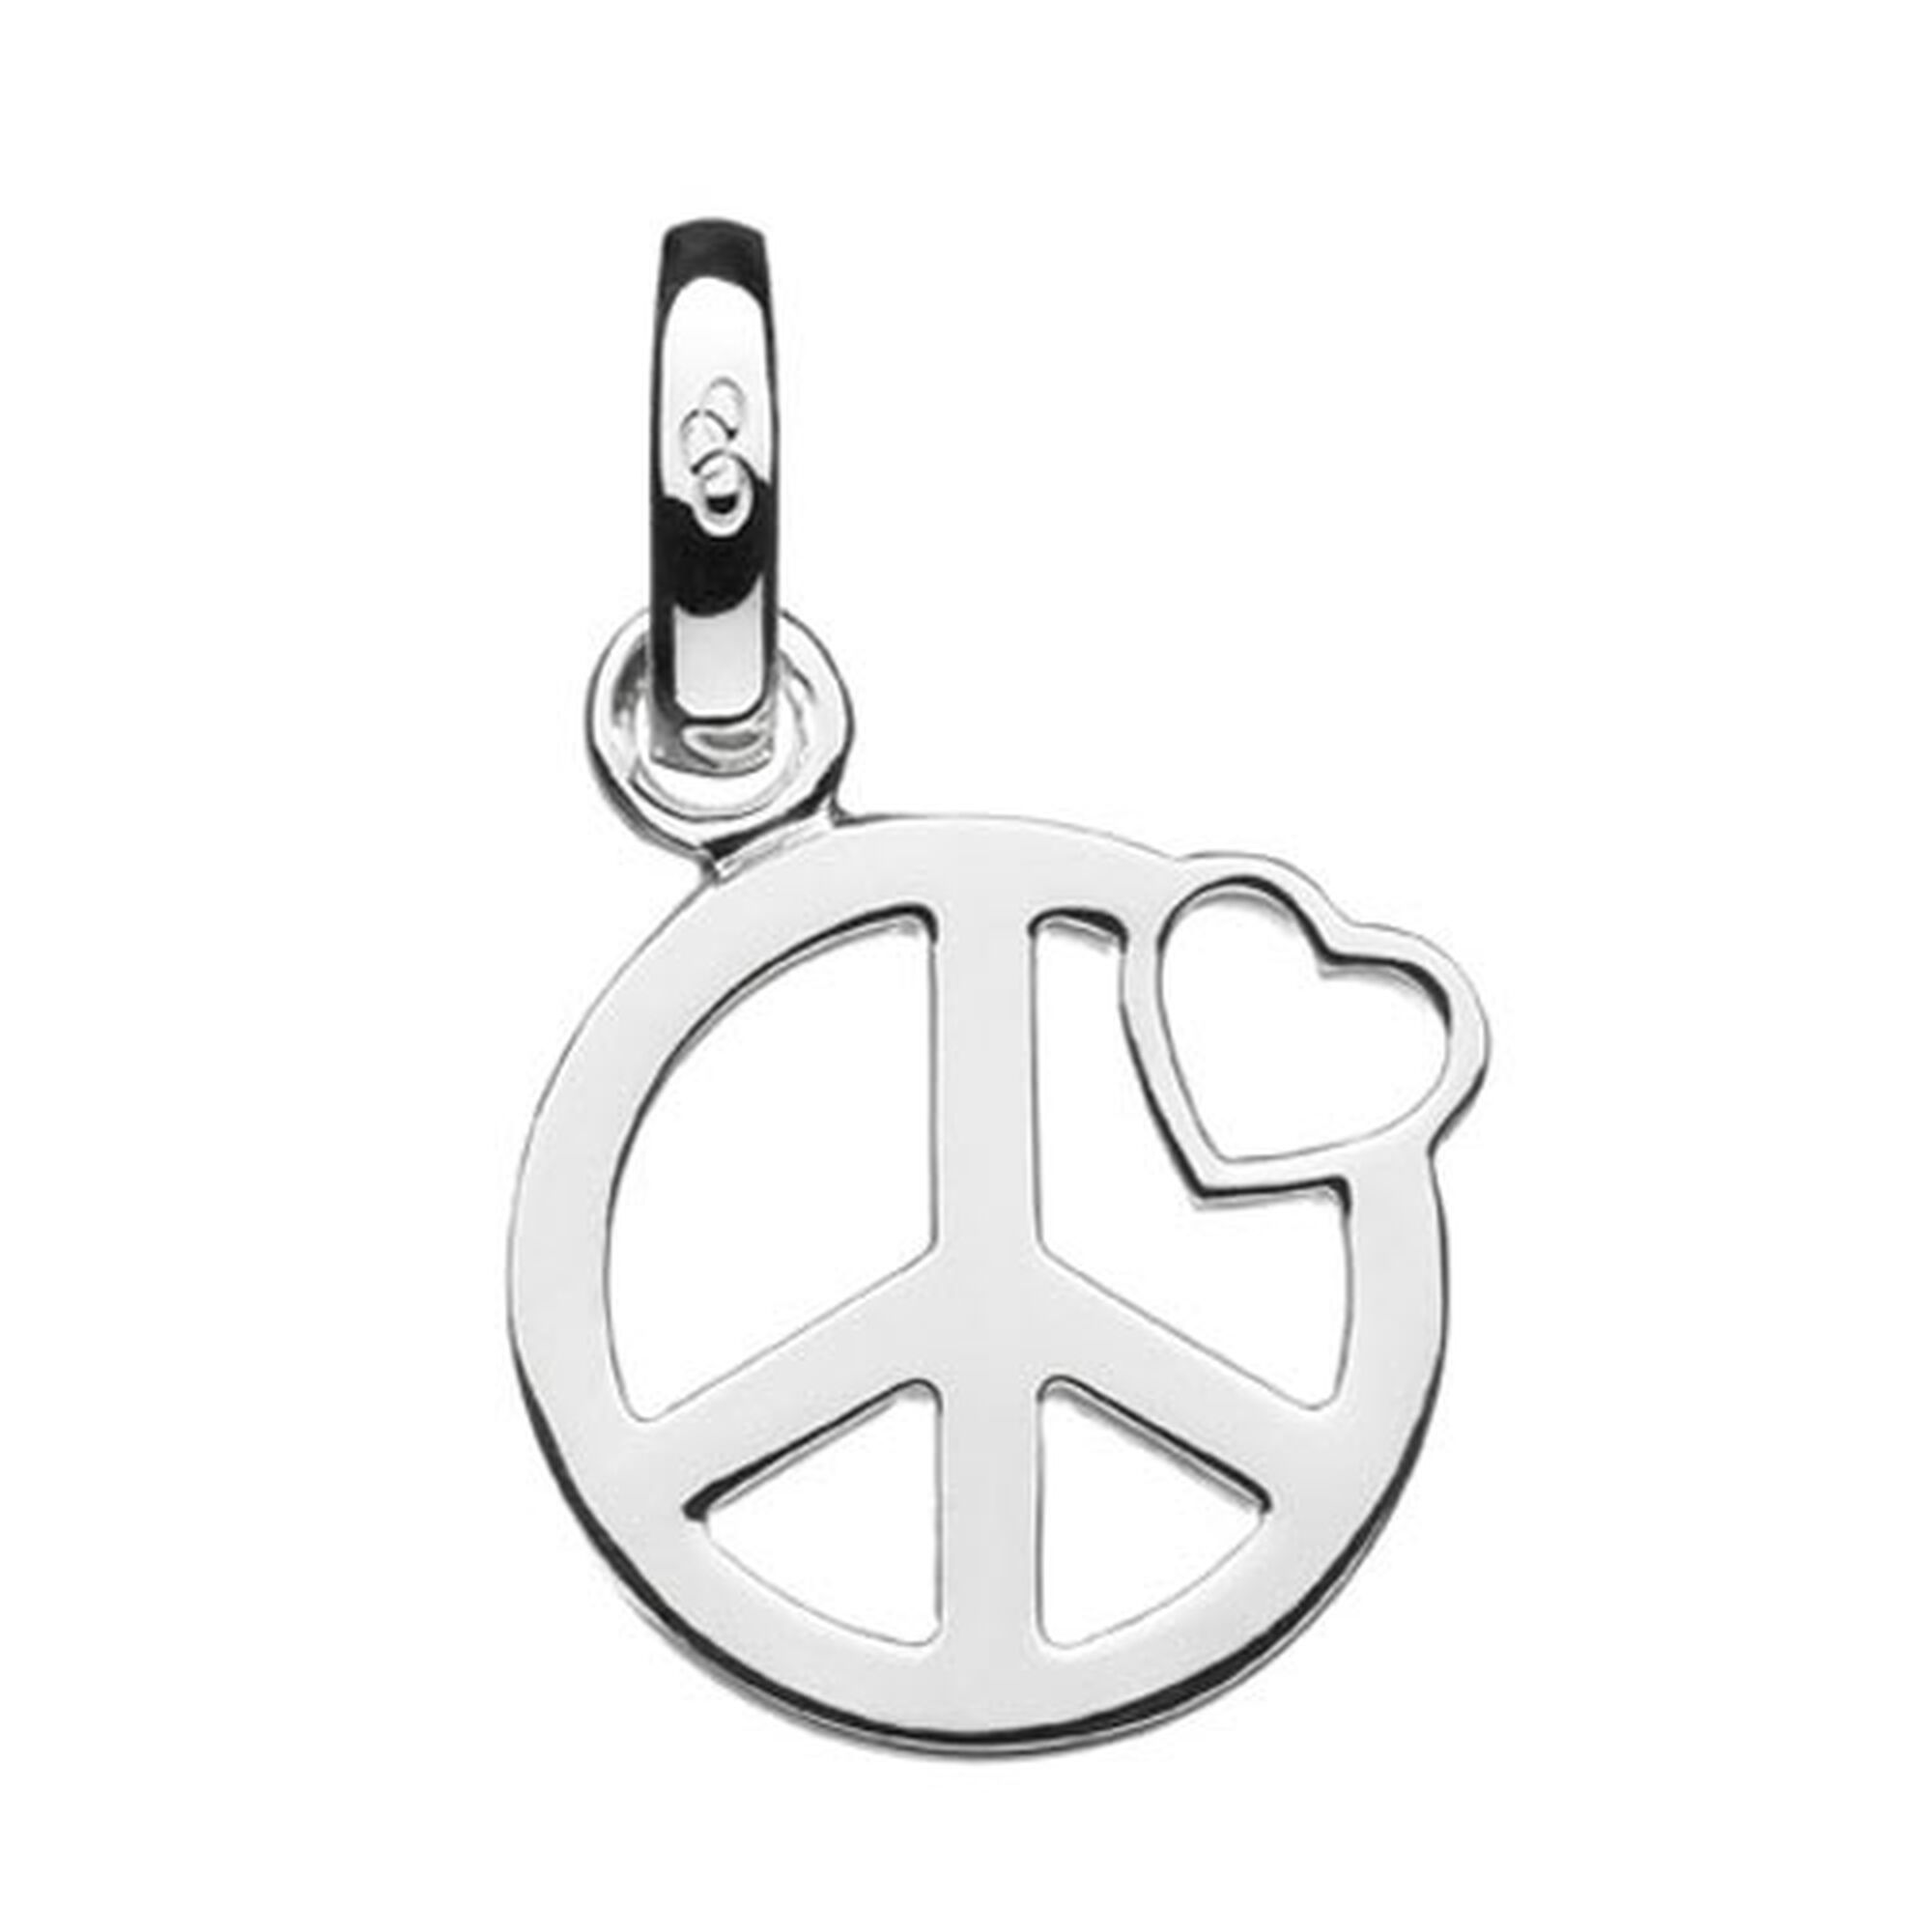 overstock pendant jewelry peace shipping sign free watches bdac product bold today gold necklace